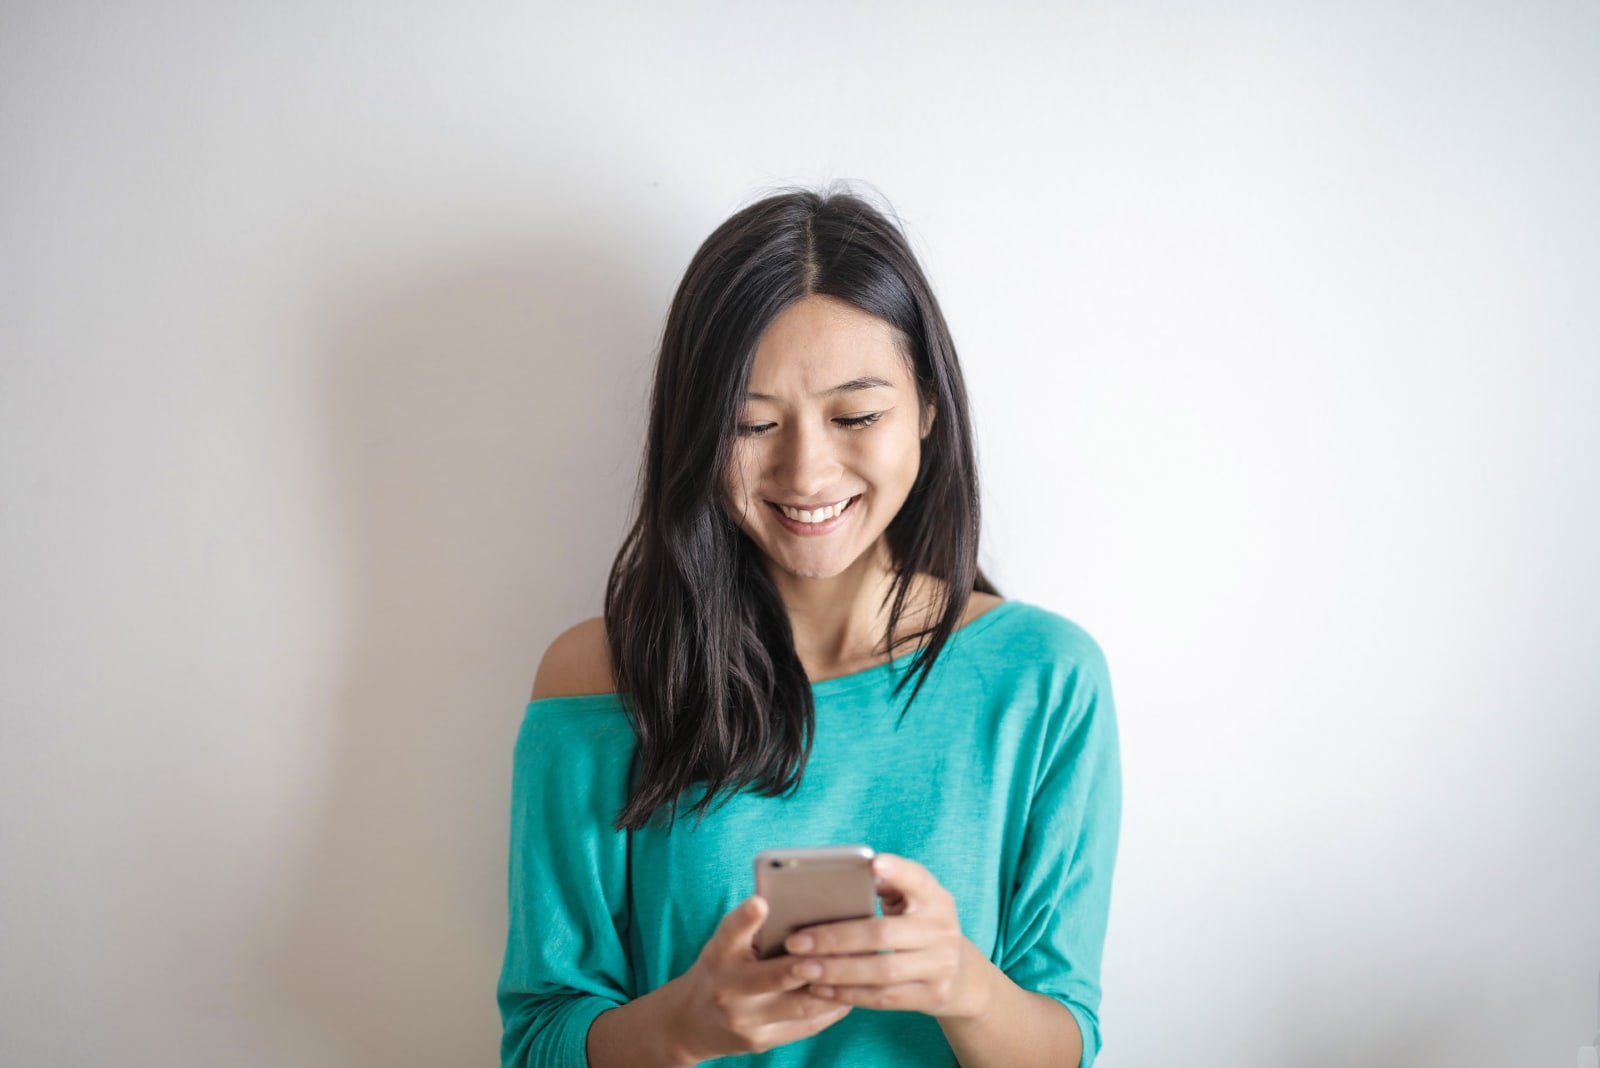 happy woman using smartphone while standing near wall